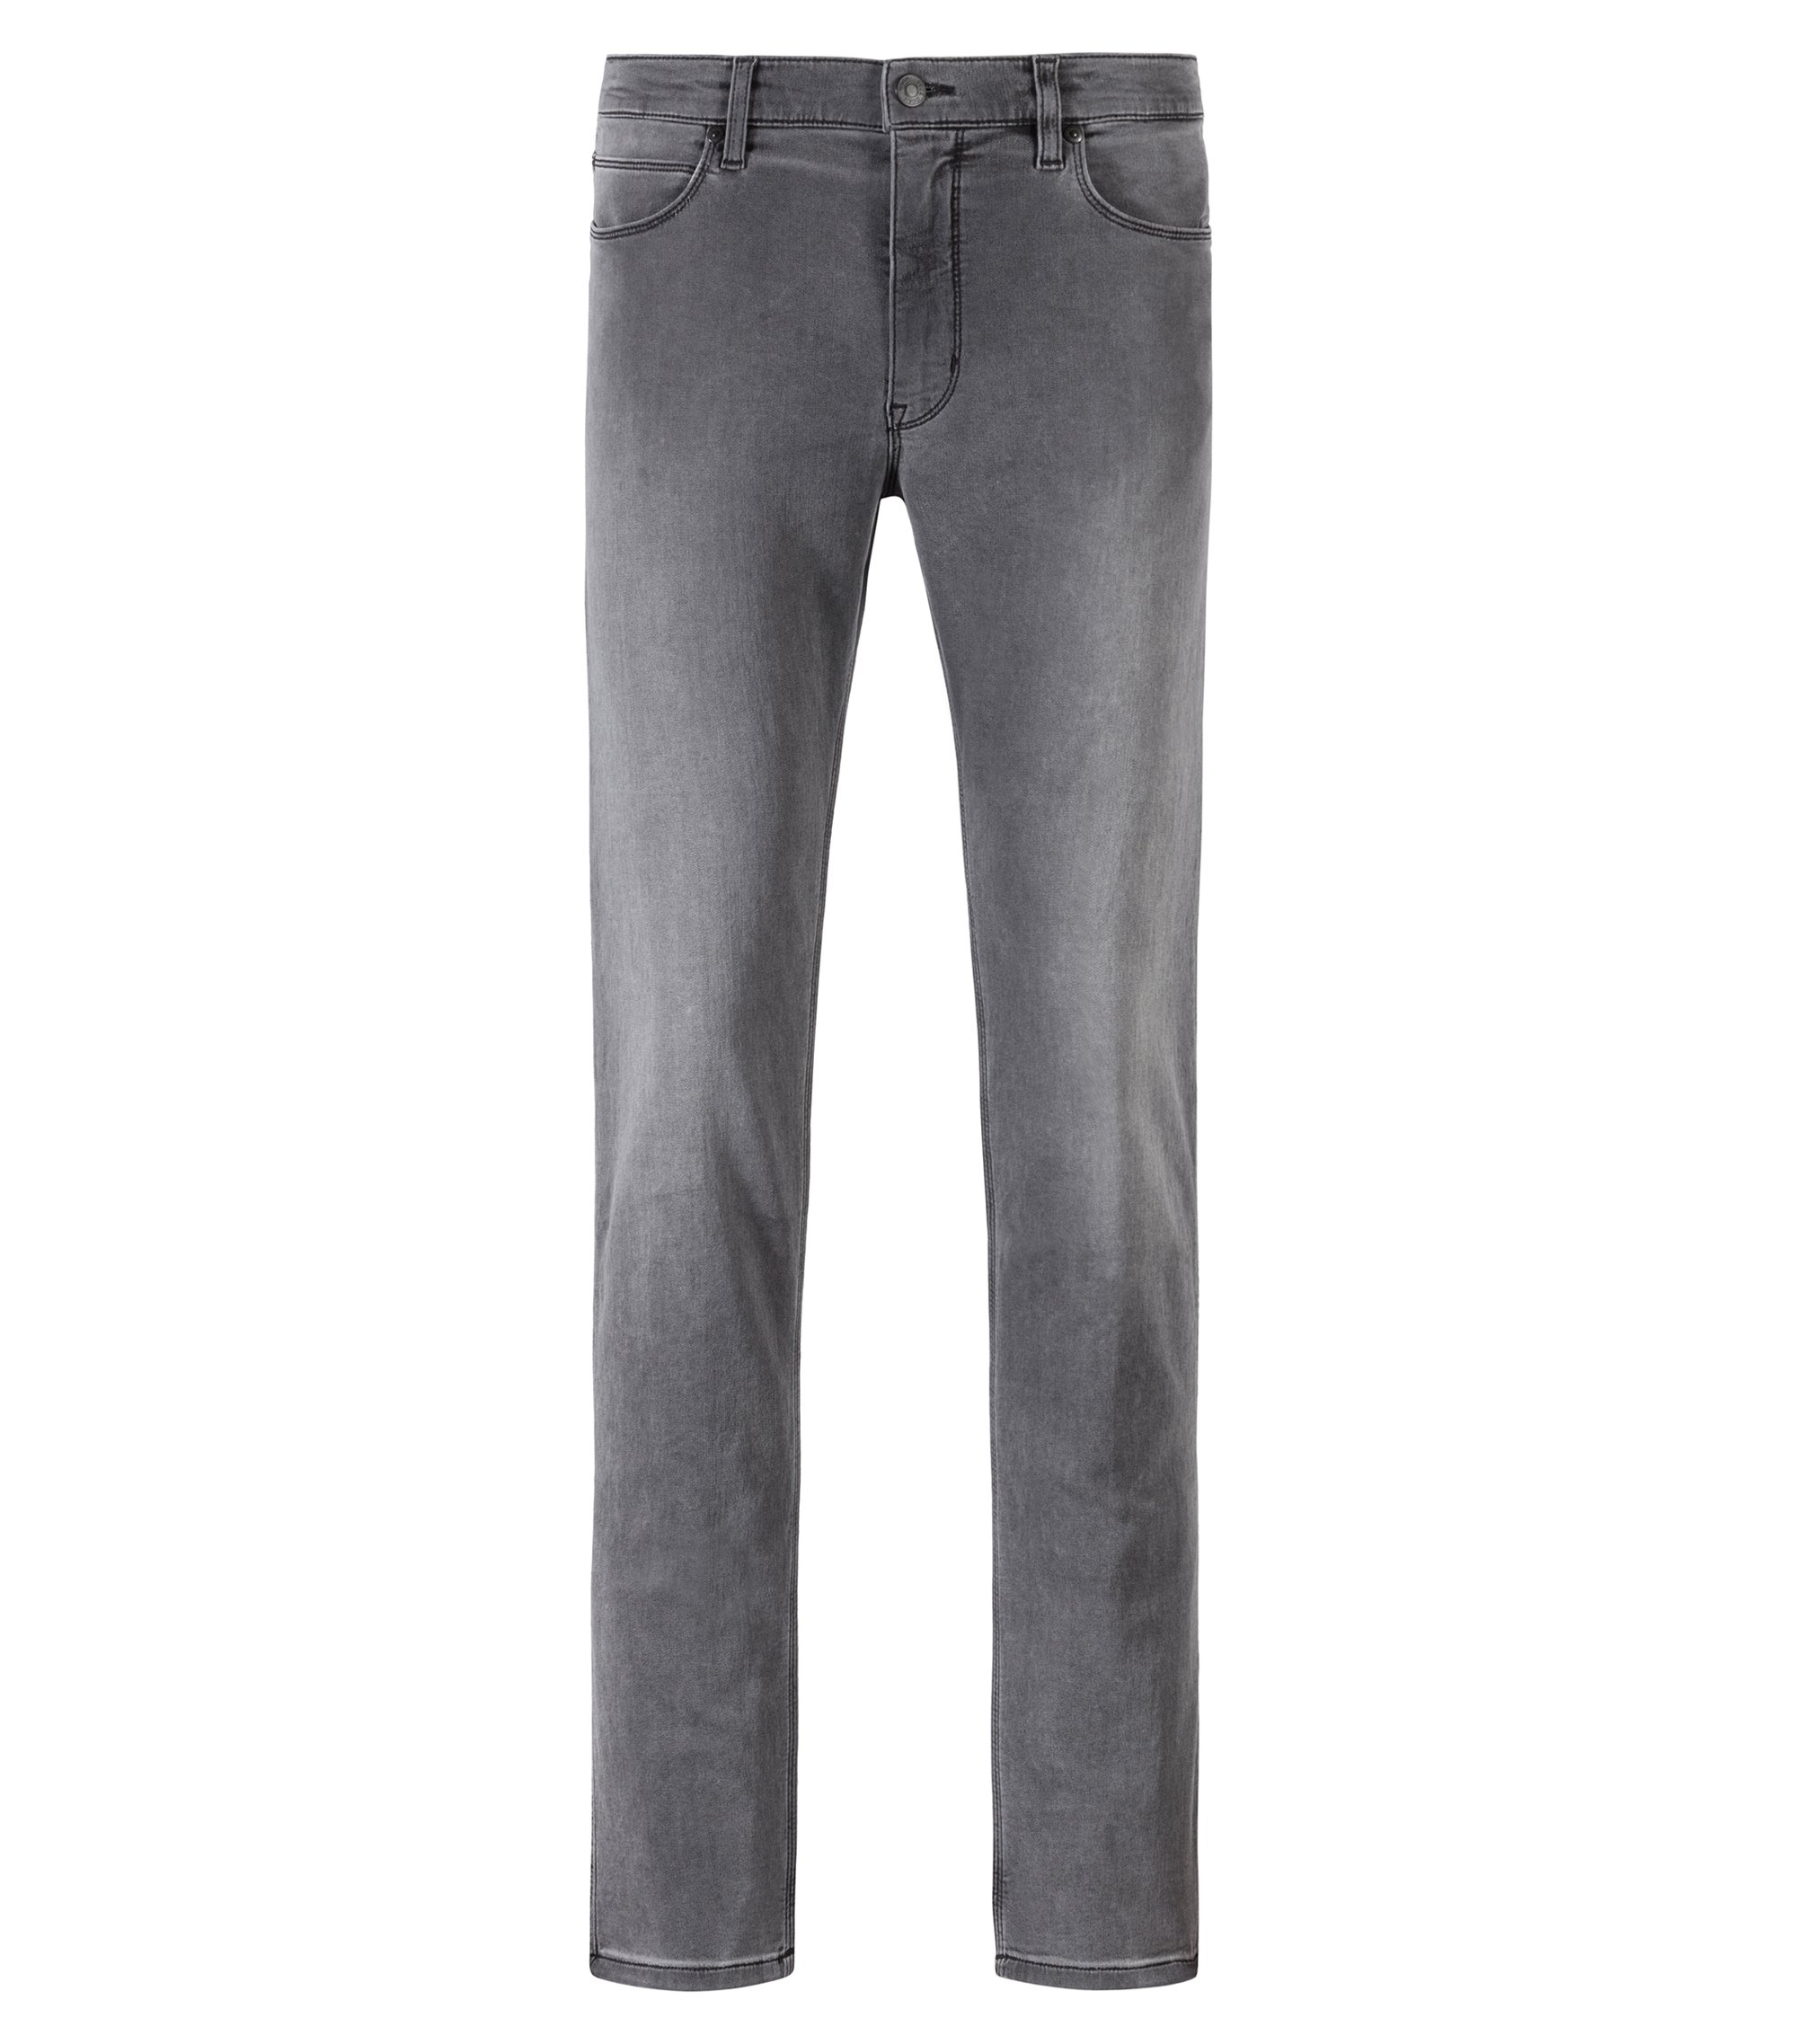 Skinny-Fit Jeans aus Stretch-Denim, Grau